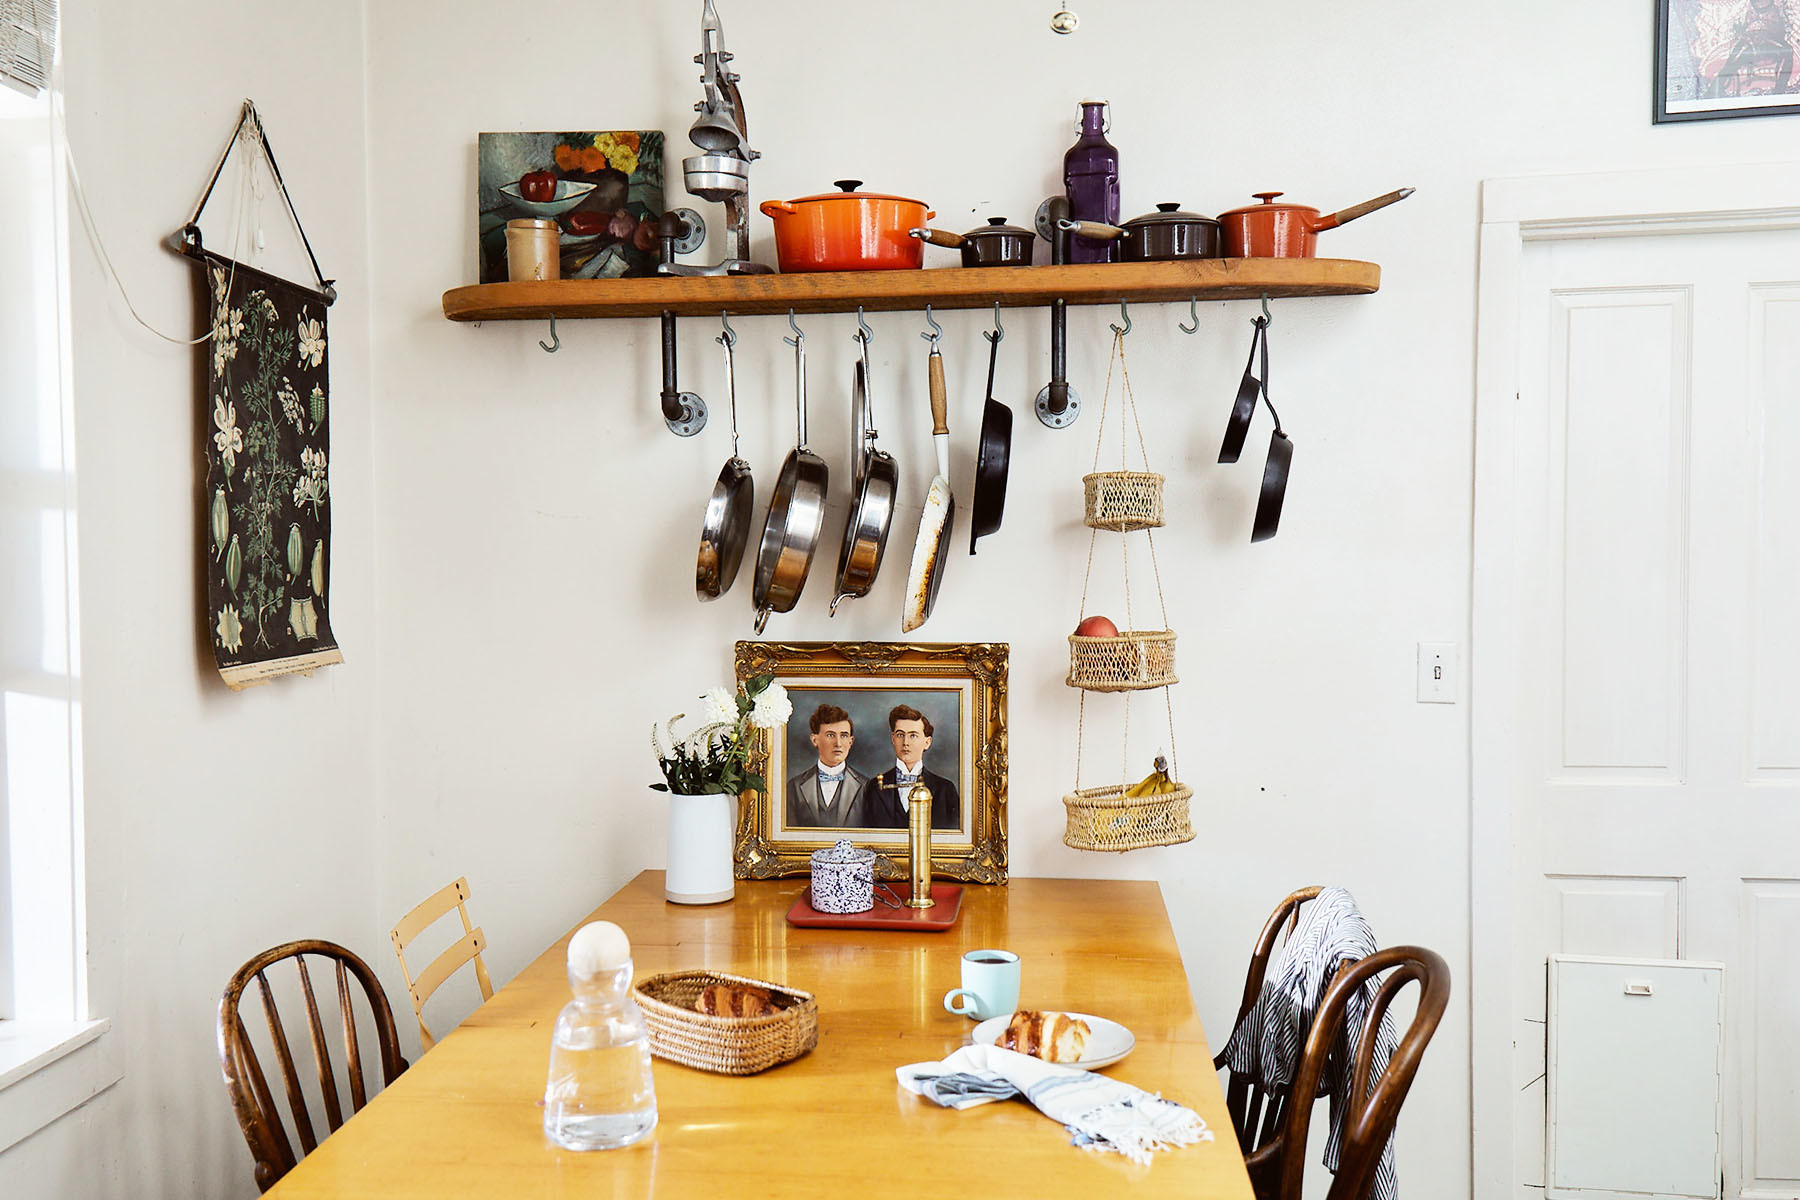 Rachel Colla's vintage cottage-style kitchen is decorated with repurposed family treasures.Vintage George Nelson for Herman Miller Dining Table | Vintage Bentwood Chairs | Vintage Artwork | Vintage Pots and Pans | Vintage Tapestry |Heath Mug |Heath Ceramics |Clad Home Water Pitcher |Atomic Garden Hanging Baskets.